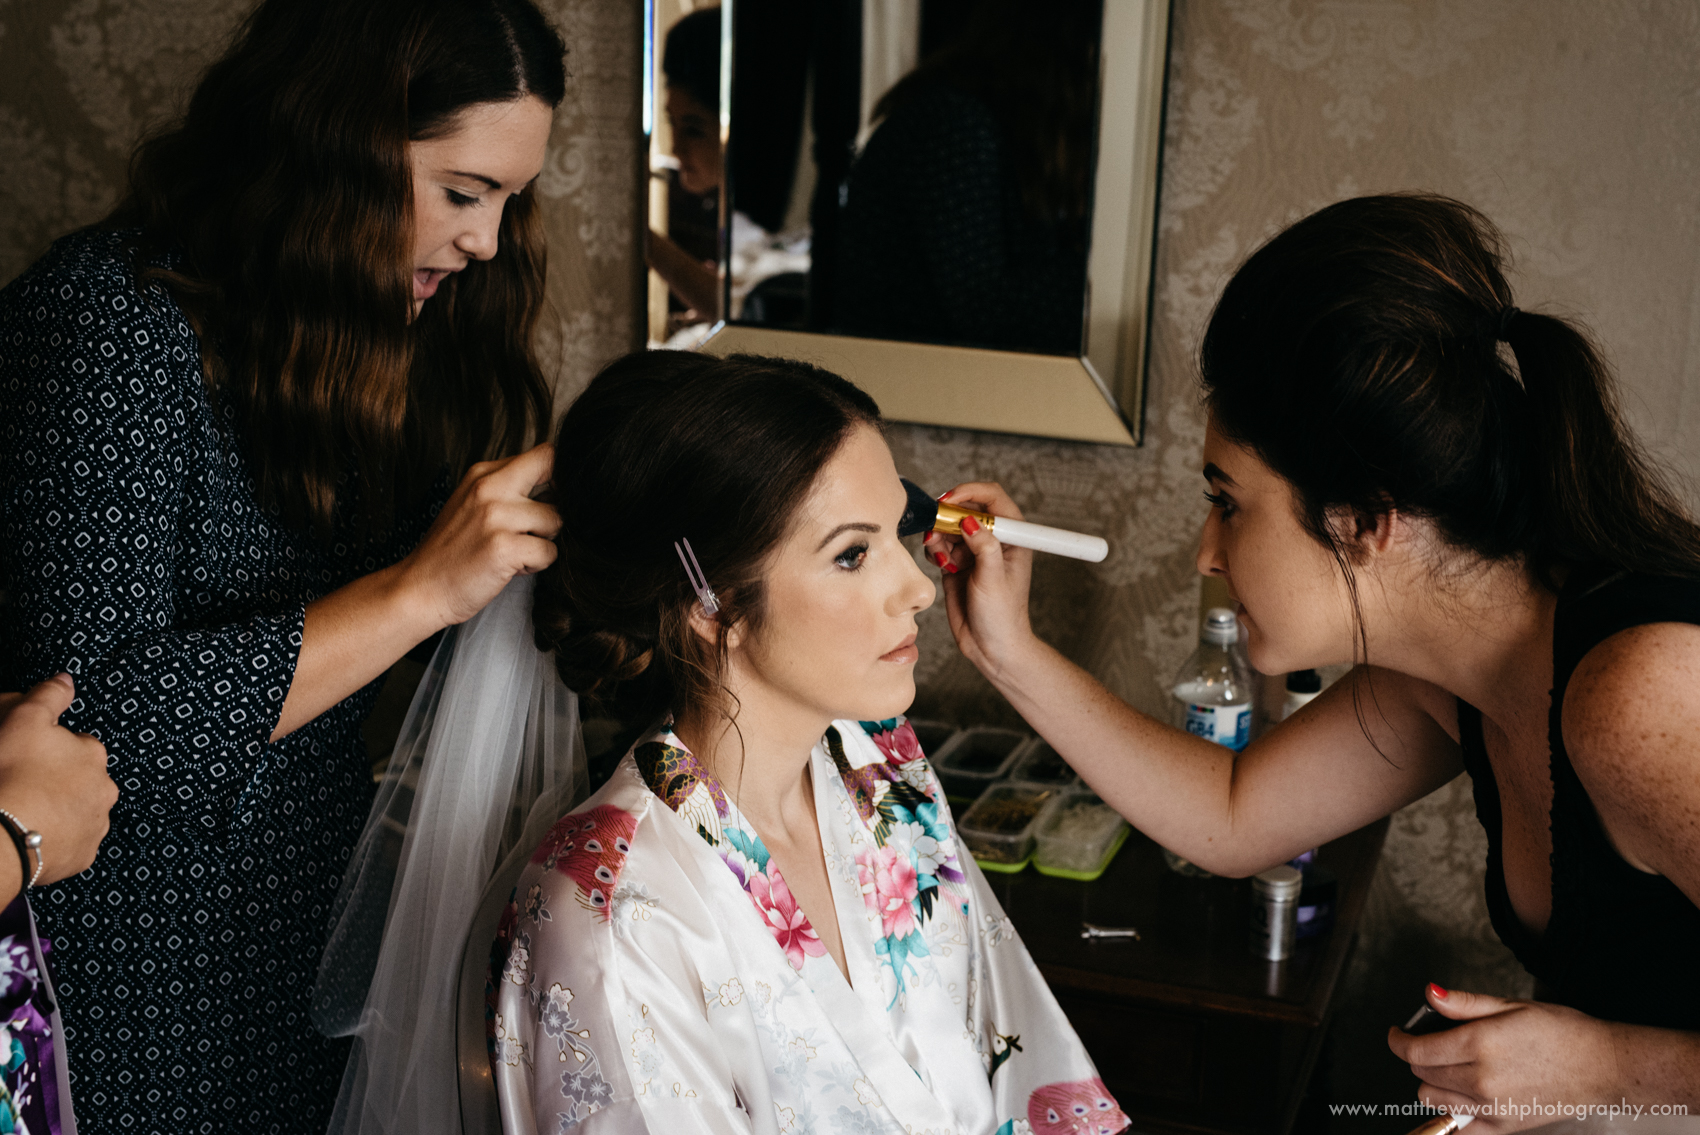 The bride has the final touches made to her makeup by the makeup artist